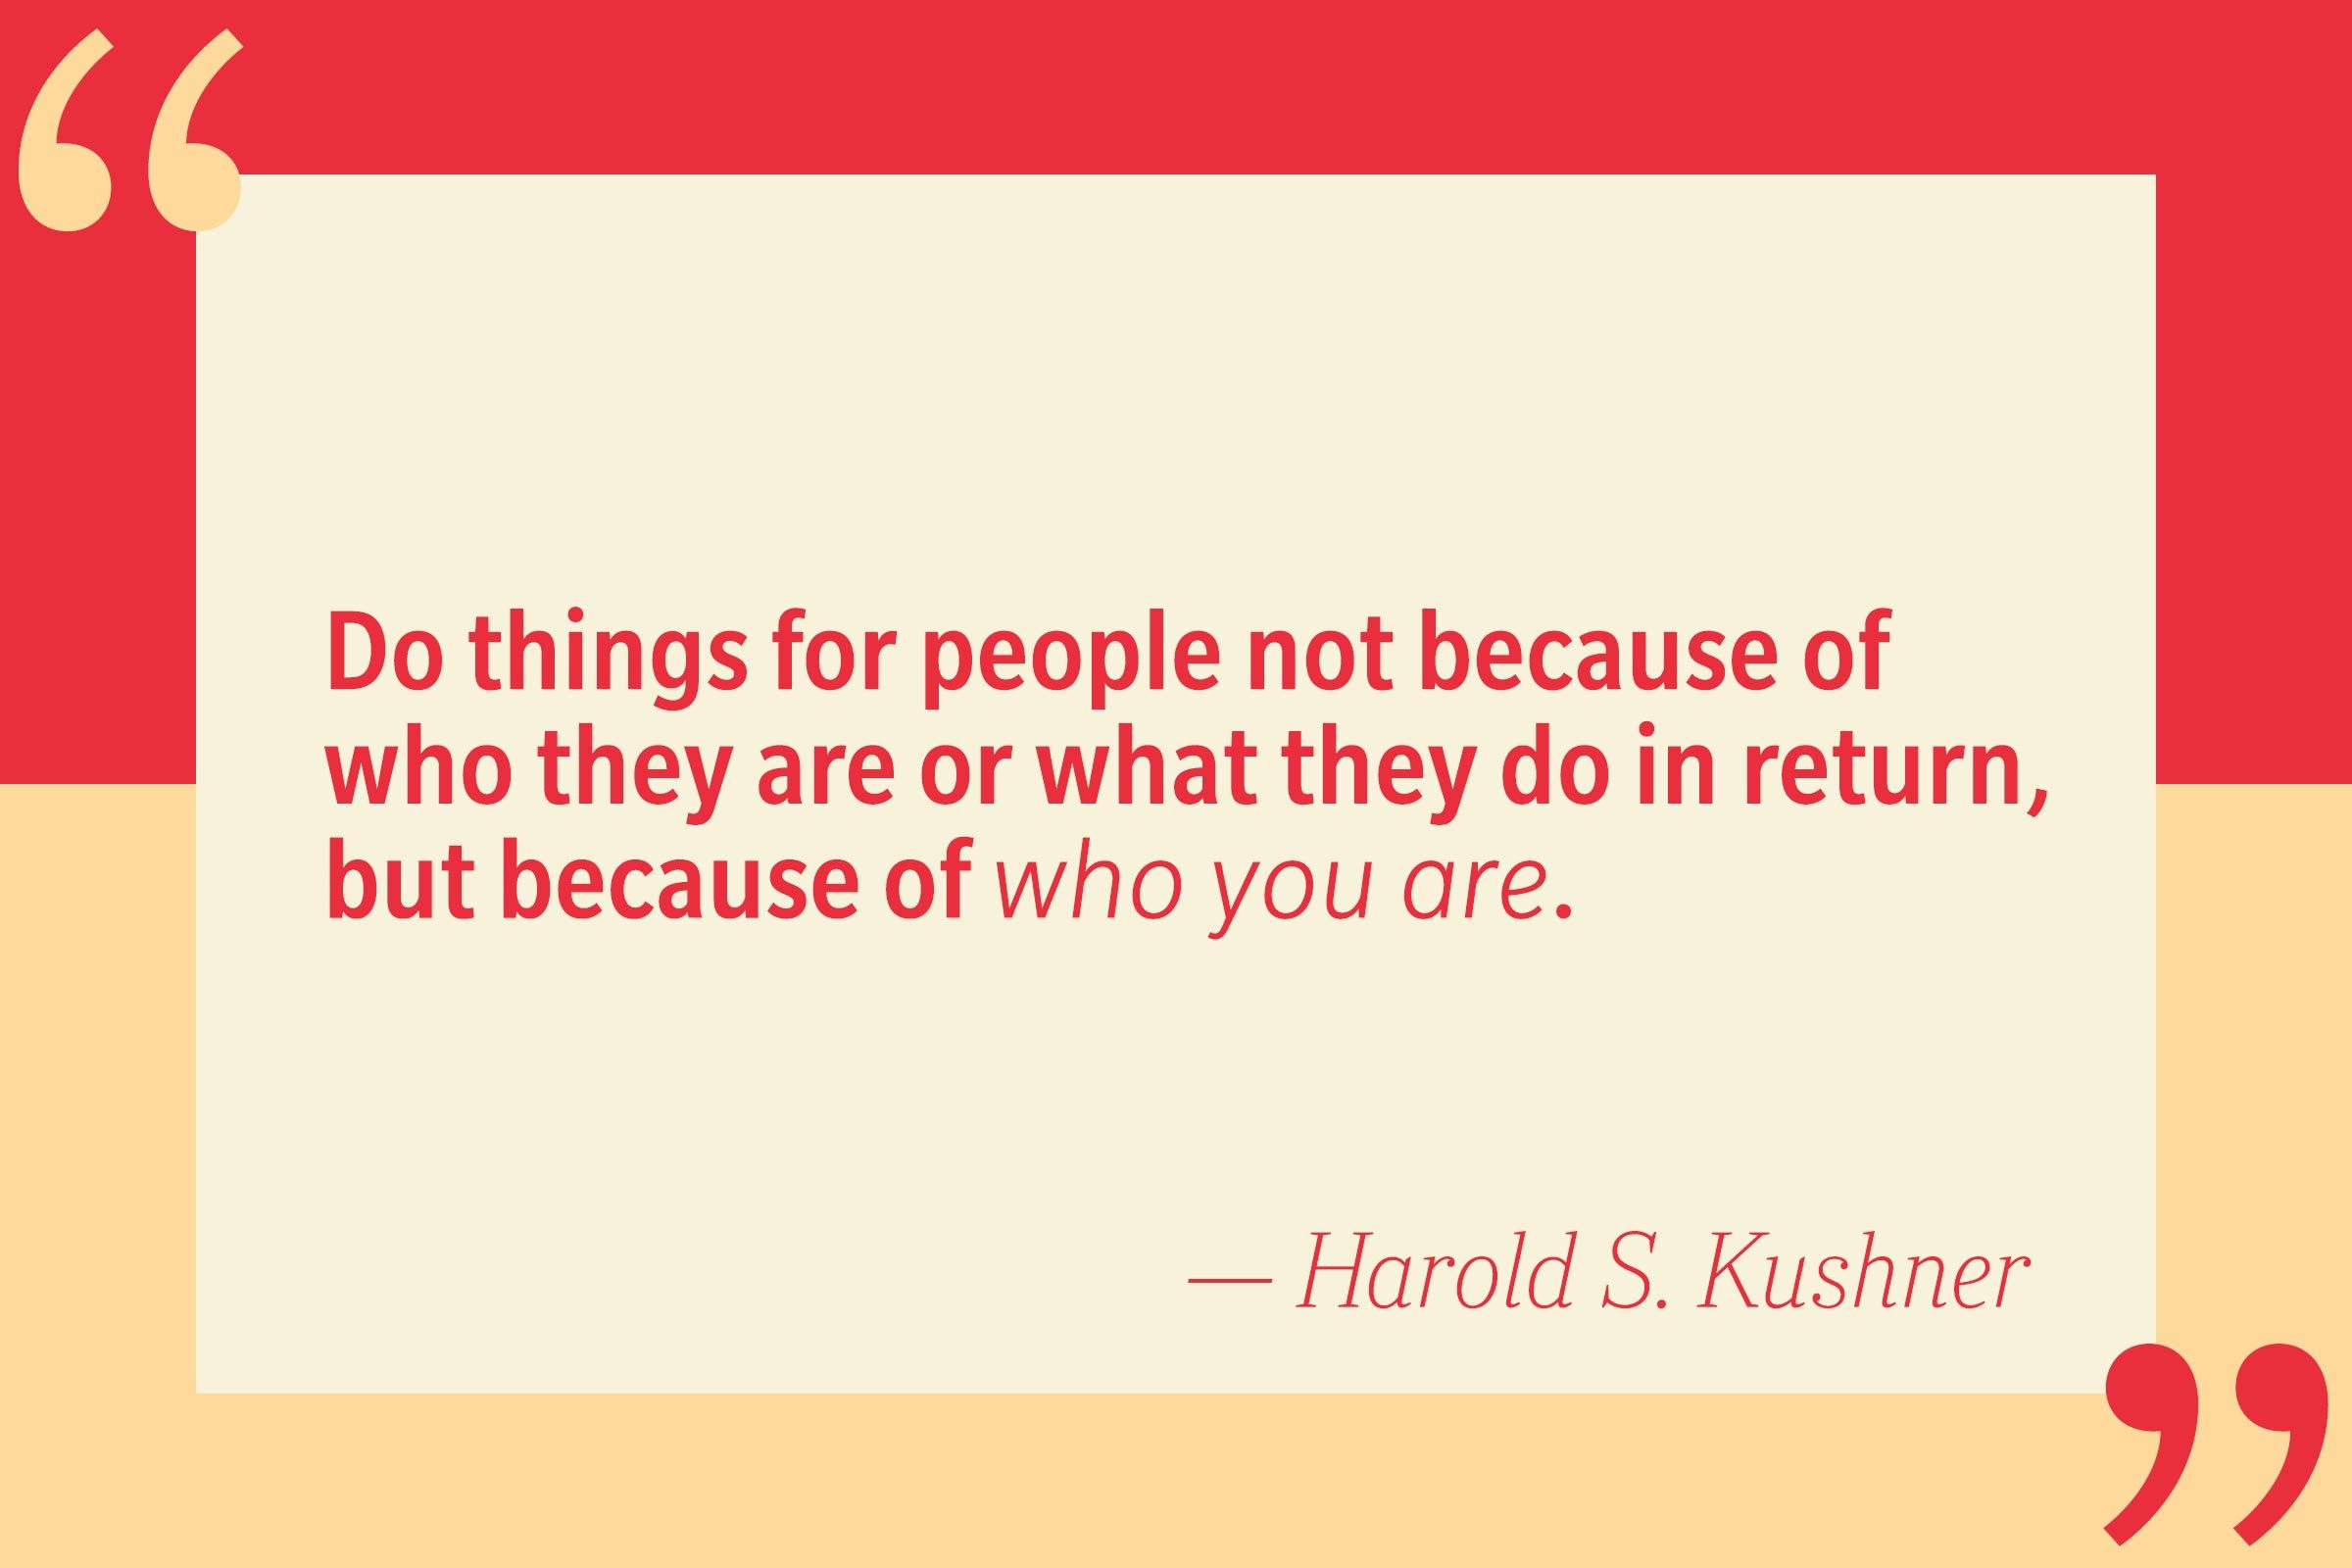 Do things for people not because of who they are or what they do in return, but because of who you are. — Harold S. Kushner